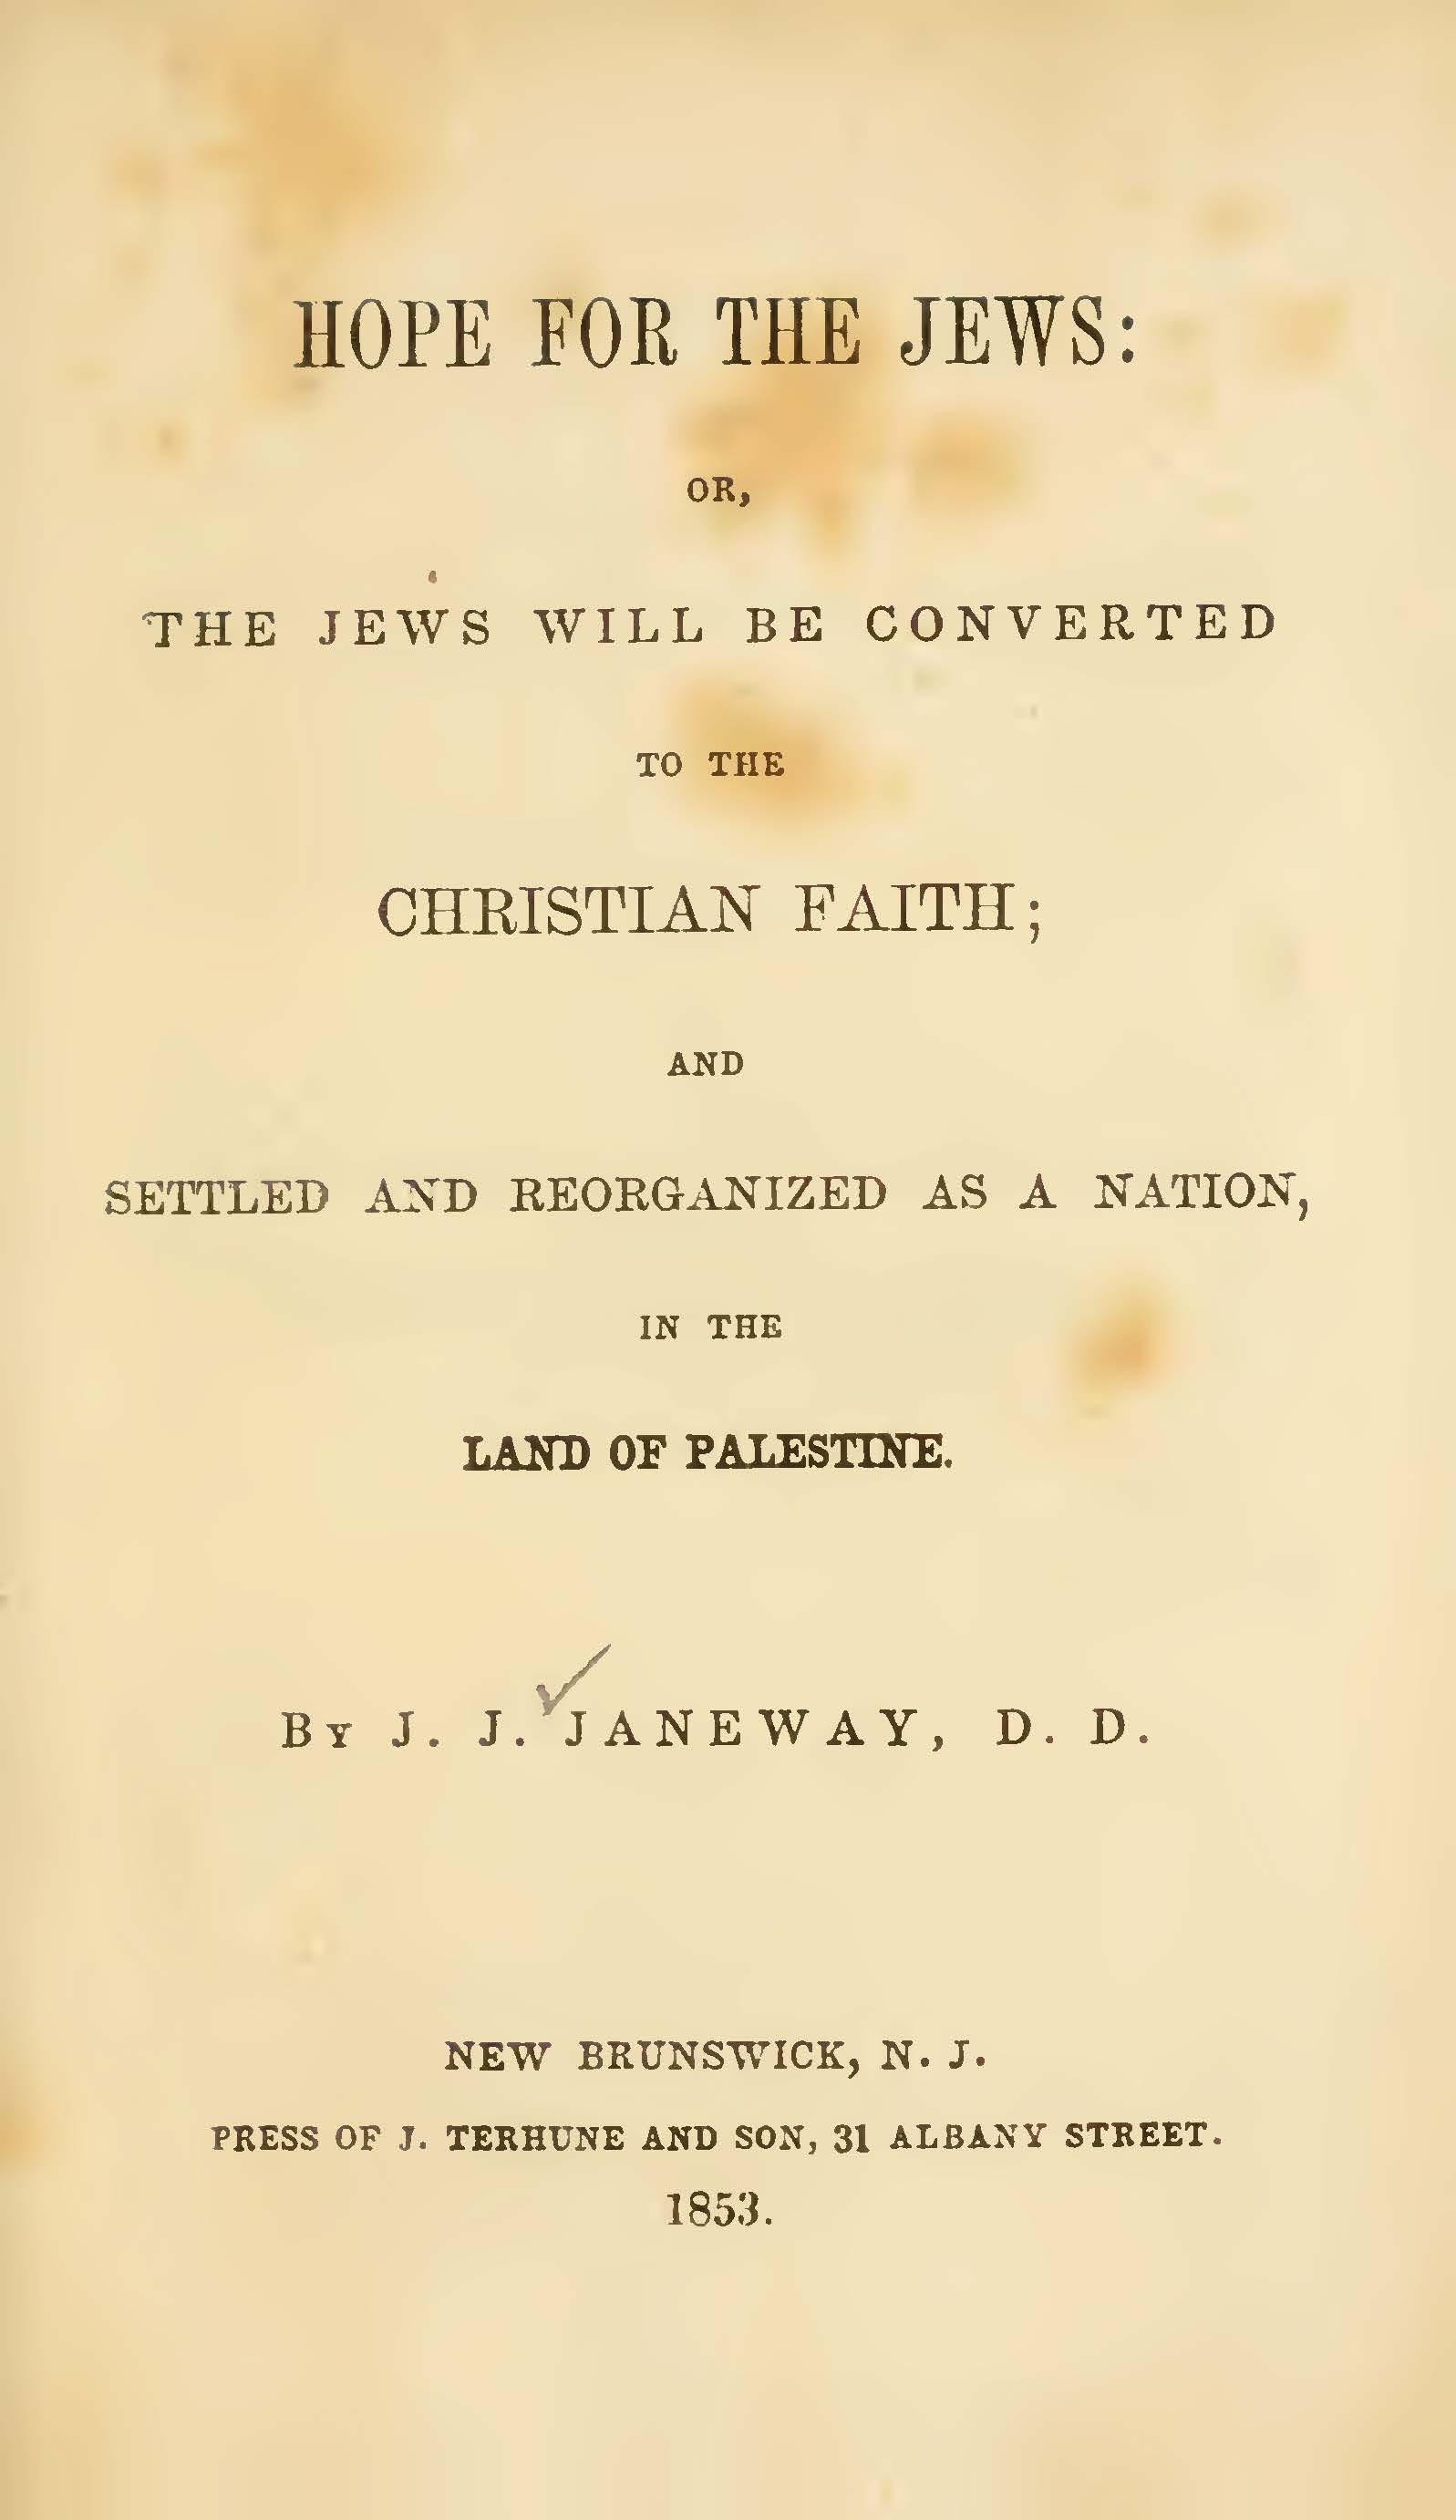 Janeway, Jacob Jones, Hope for the Jews or The Jews Will Be Converted to the Christian Faith Title Page.jpg